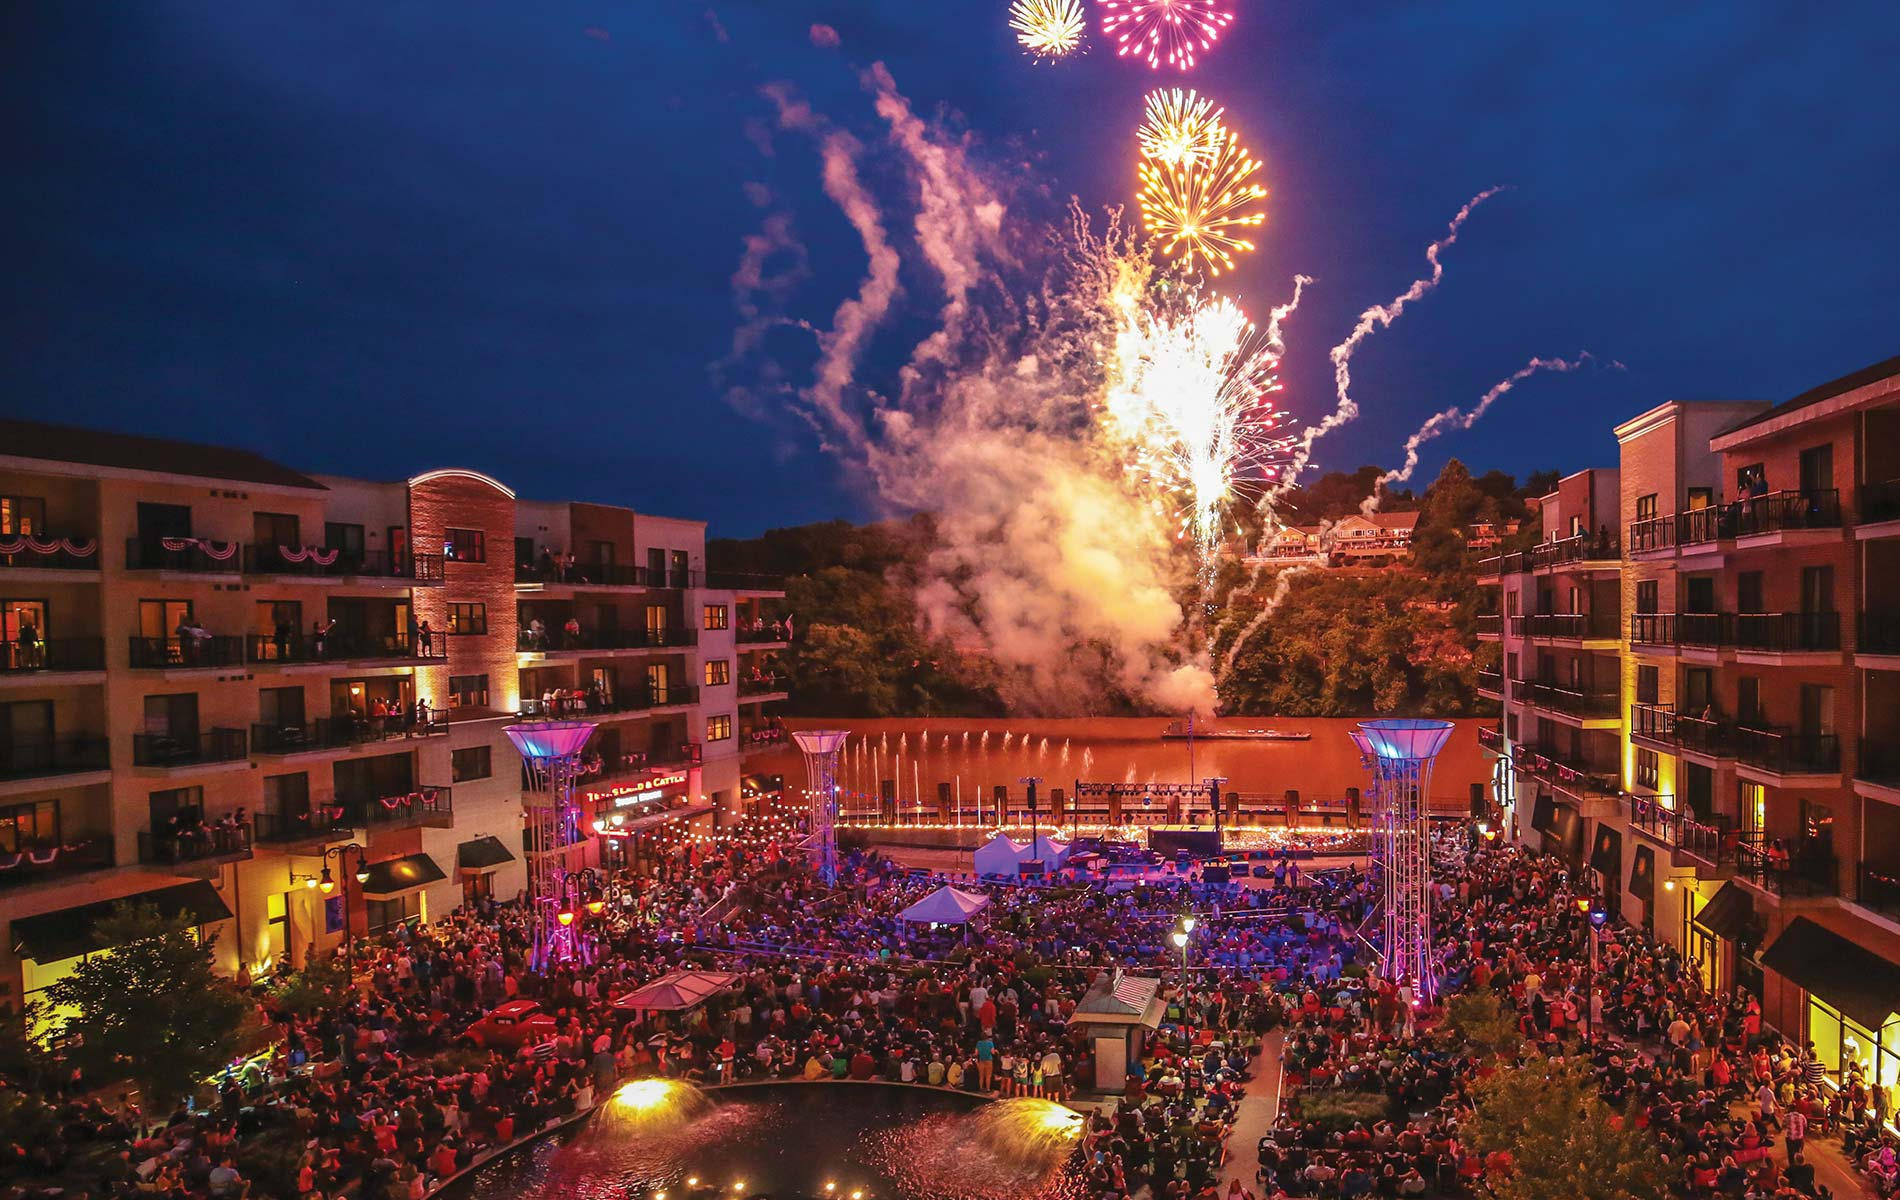 Branson Landing is a popular outdoor music venue in the city; the complex also includes a Hilton hotel, condos, over a hundred retail stores, restaurants, and more. Photo courtesy of Branson CVB